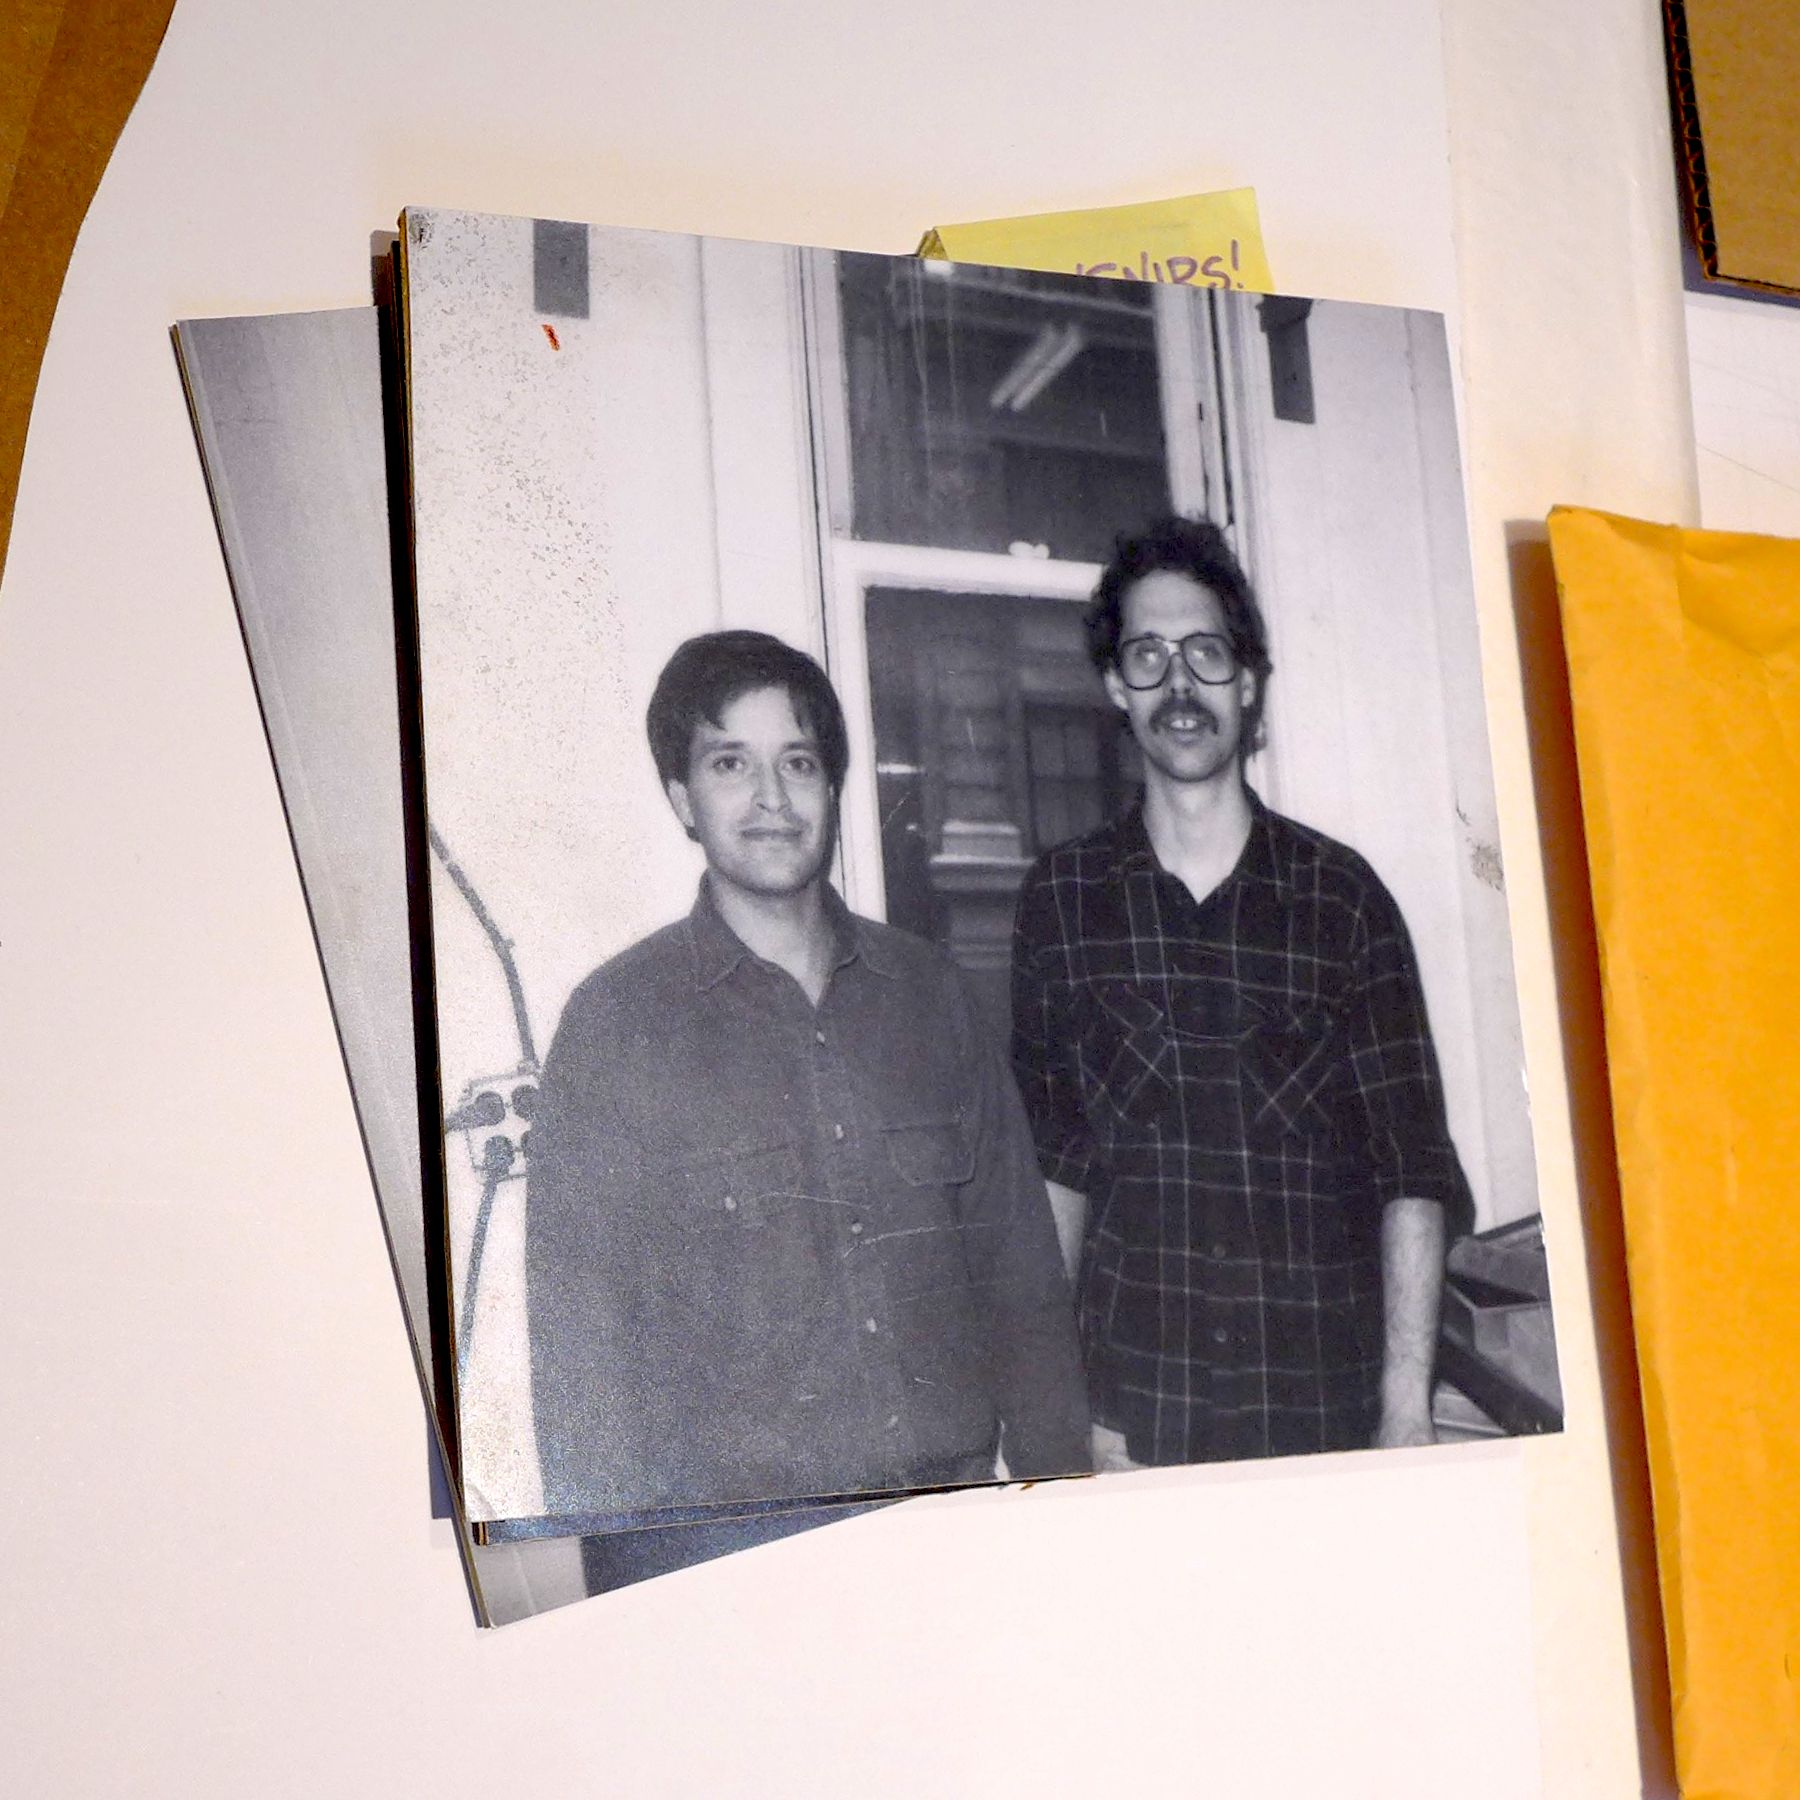 A photo of co-owners Donald and David in the early days.